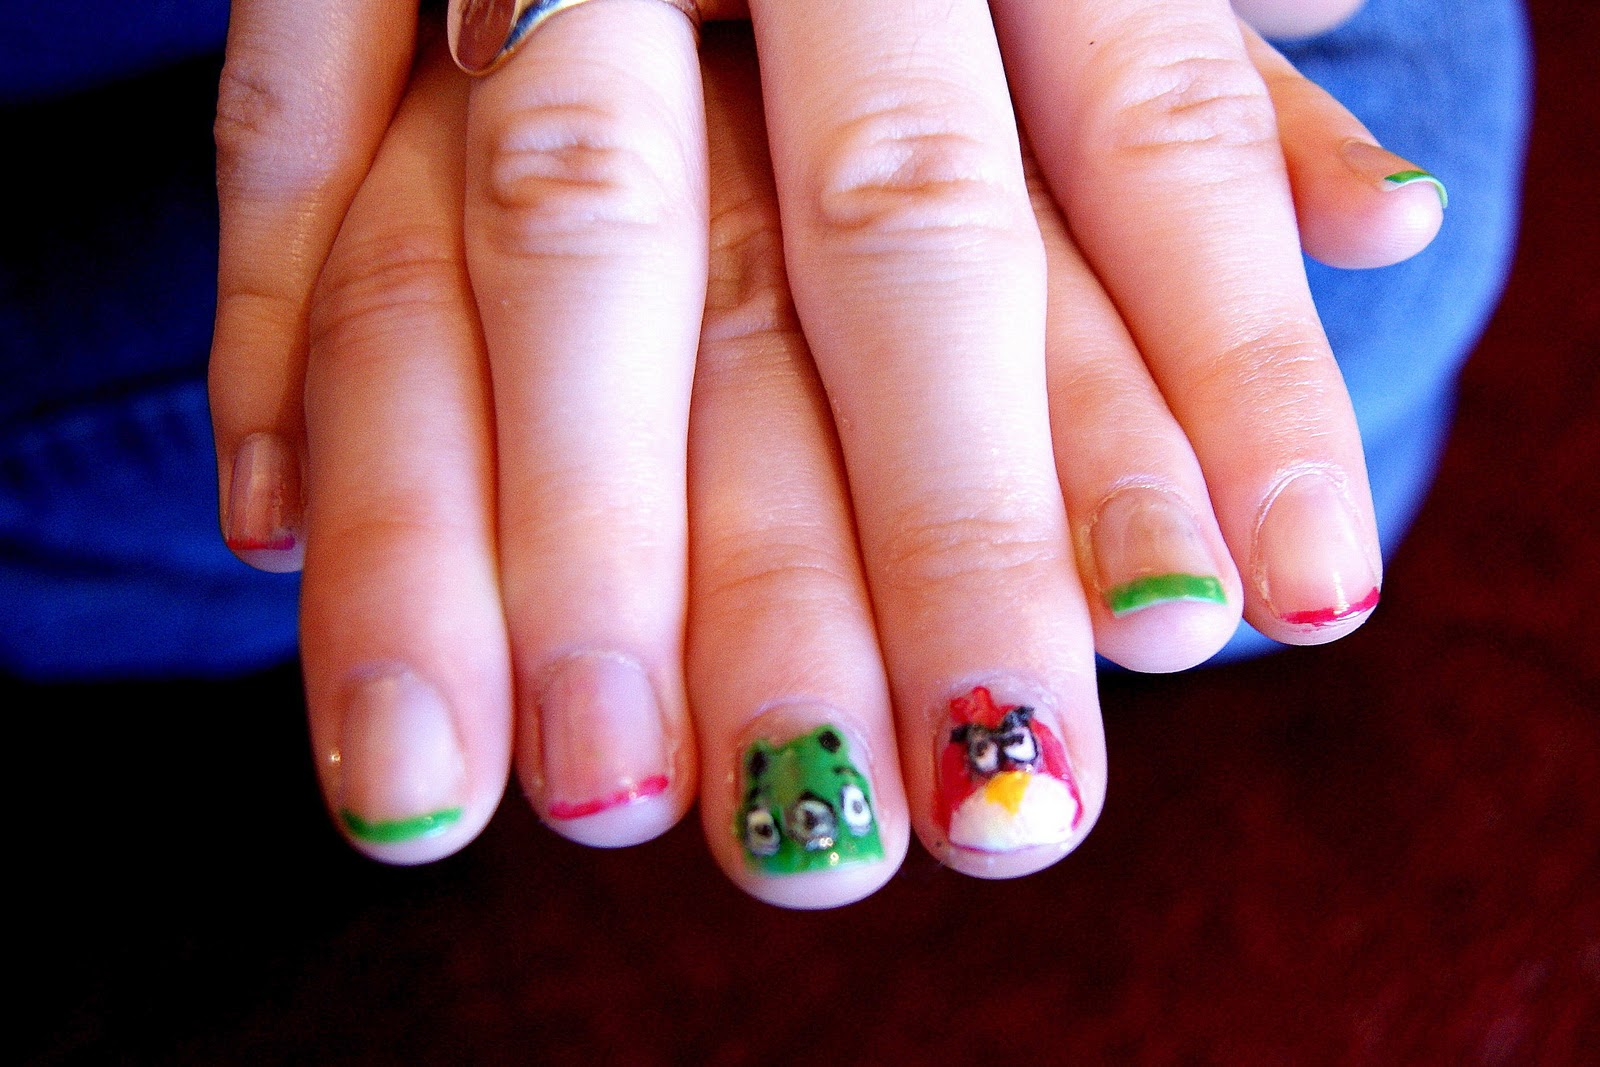 Unlimited by JK: Angry Birds nail art